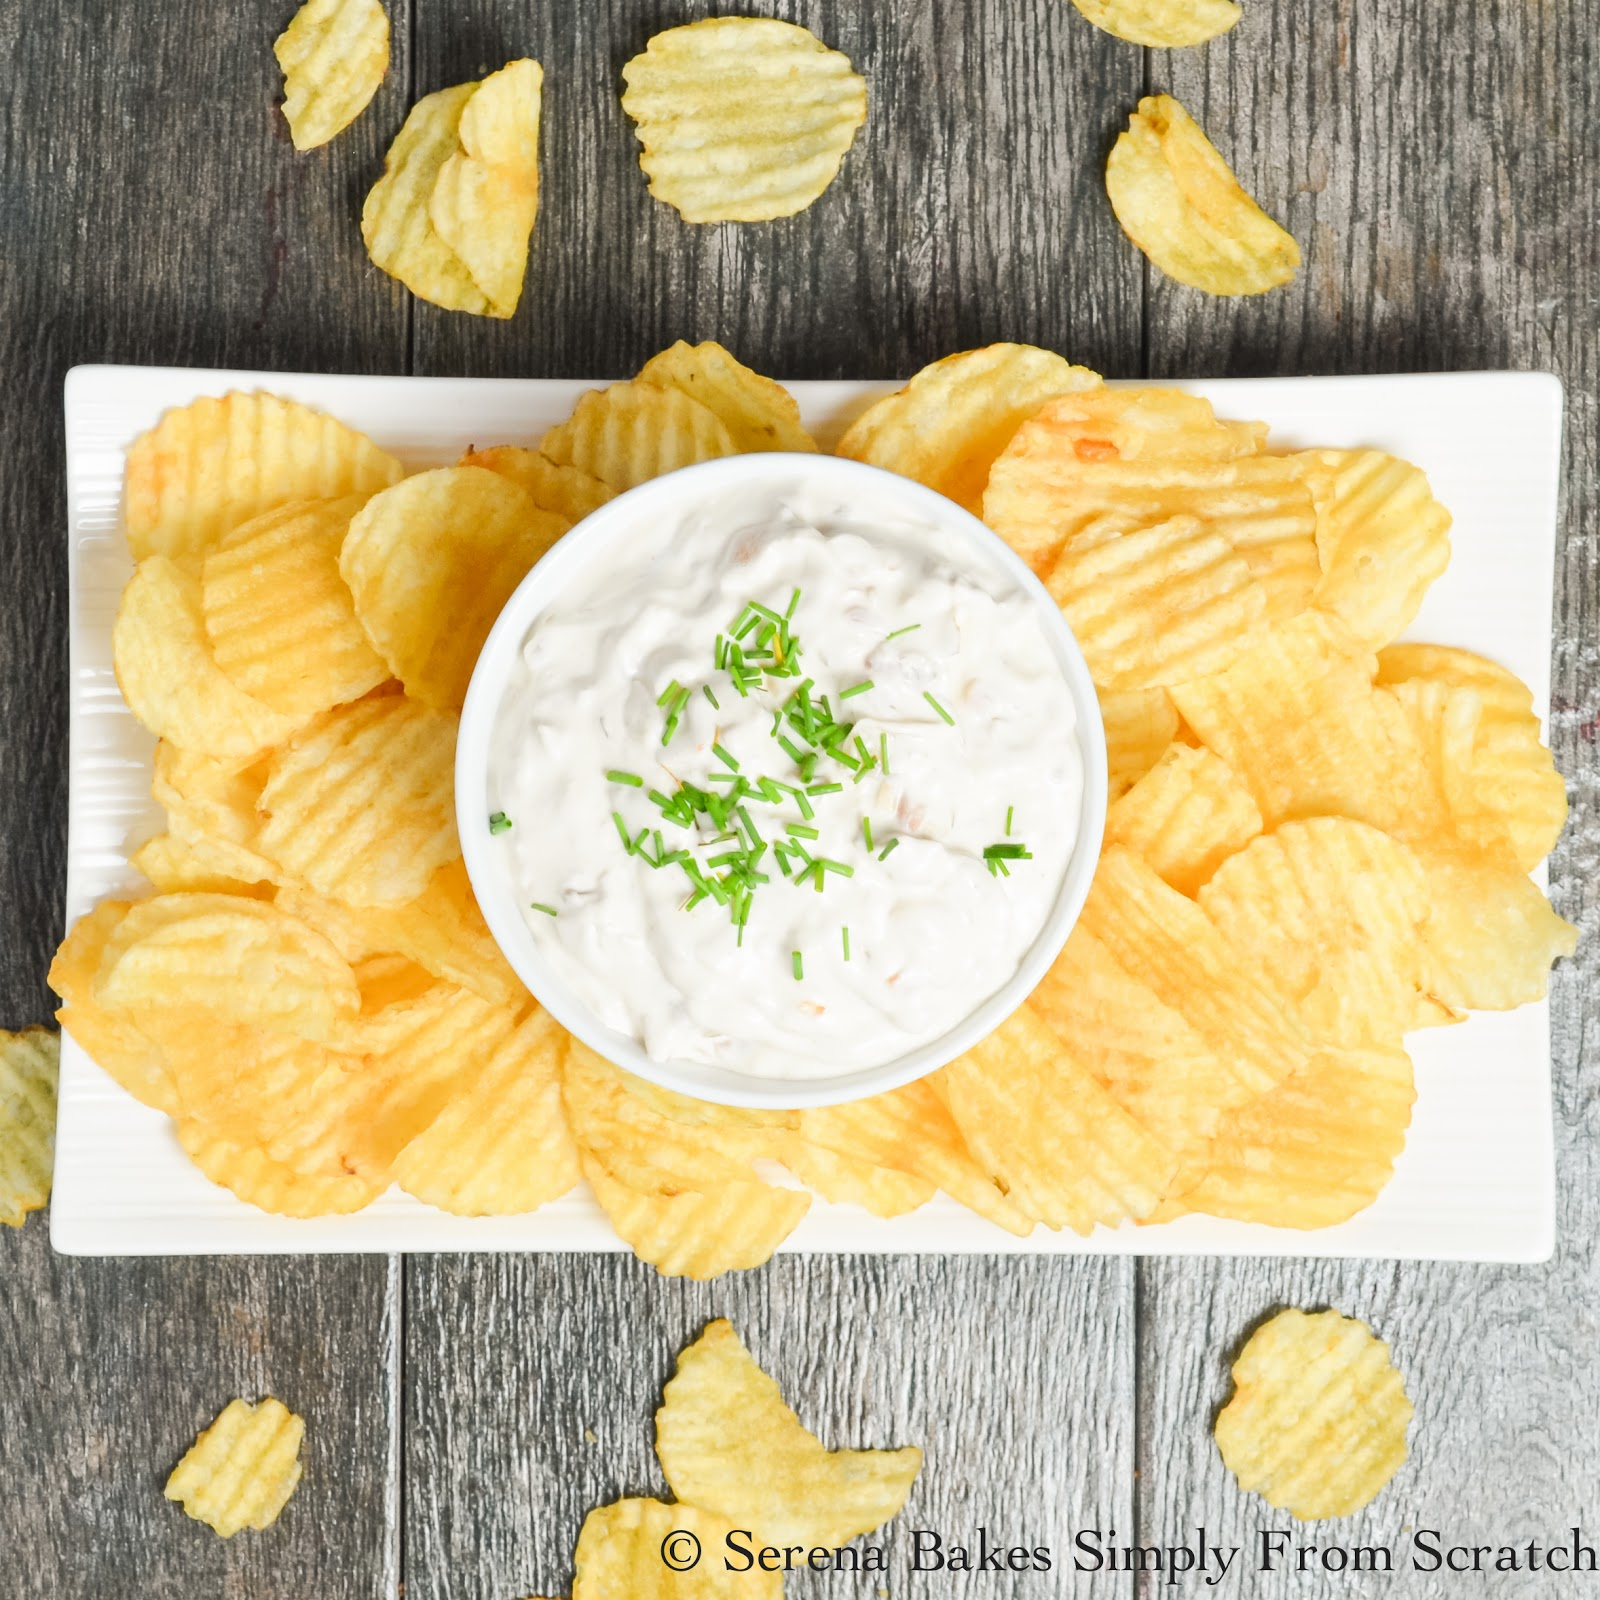 Grannies Clam Dip with 40 other Cocktail and Appetizer Recipes to get your party started!